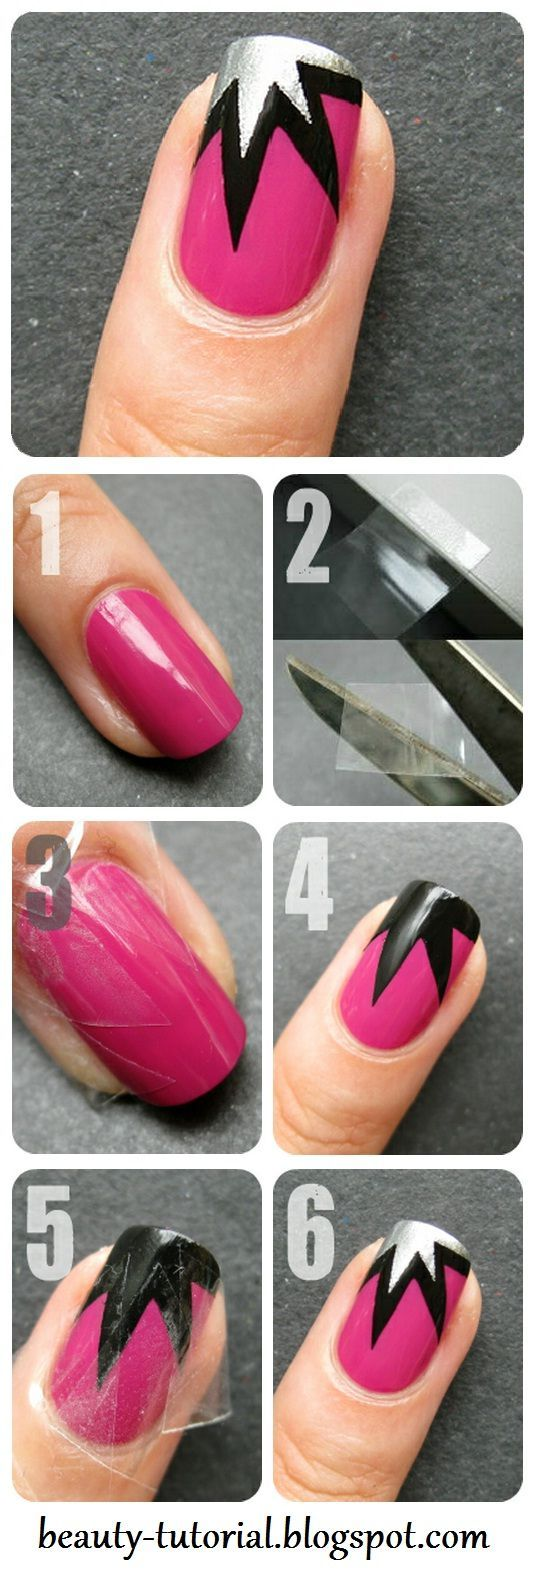 Explosion nail art design tape manicure tutorial nails pinterest explosion nail art design tape manicure tutorial nadyana magazine awesome design just too much work for me to do on my nails though solutioingenieria Gallery